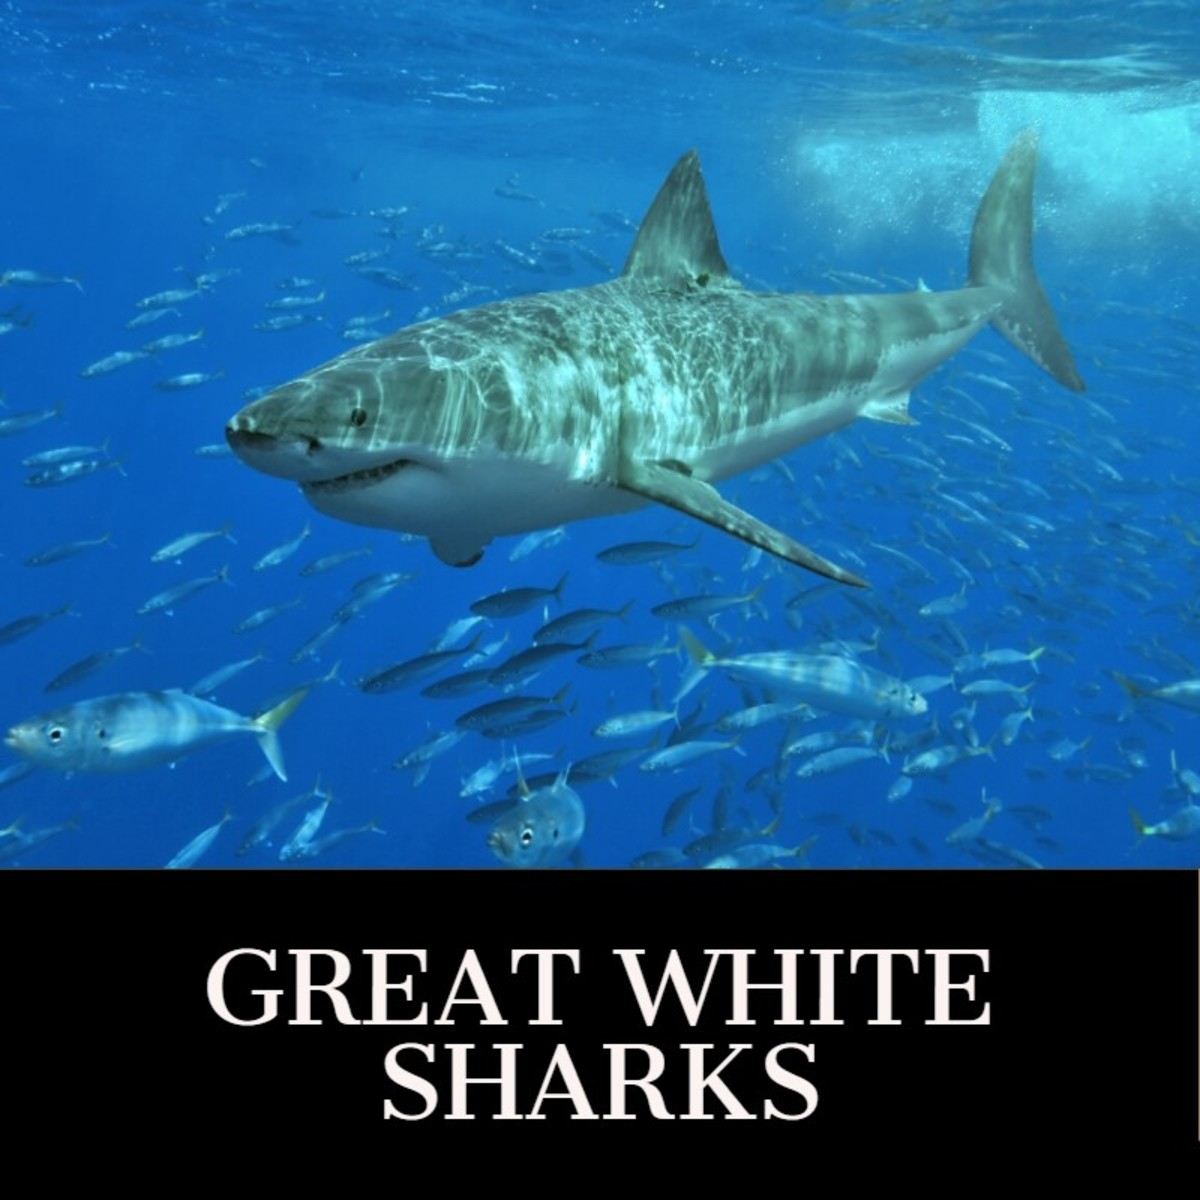 Large Great White Shark spotted in group of fish.